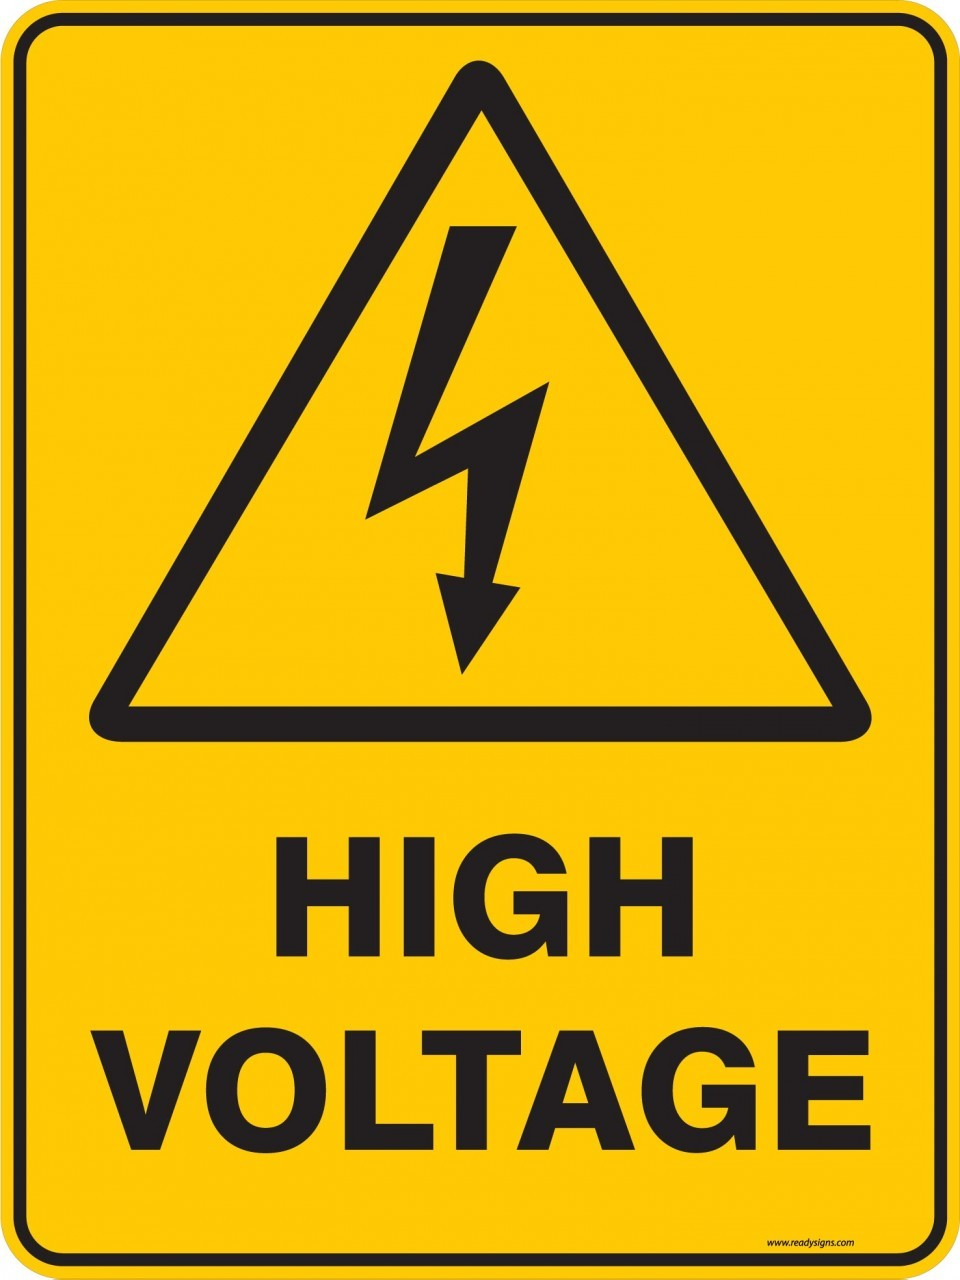 High voltage symbol image collections symbol and sign ideas nice high voltage symbols contemporary electrical circuit beautiful high voltage electrical symbols photos electrical buycottarizona buycottarizona